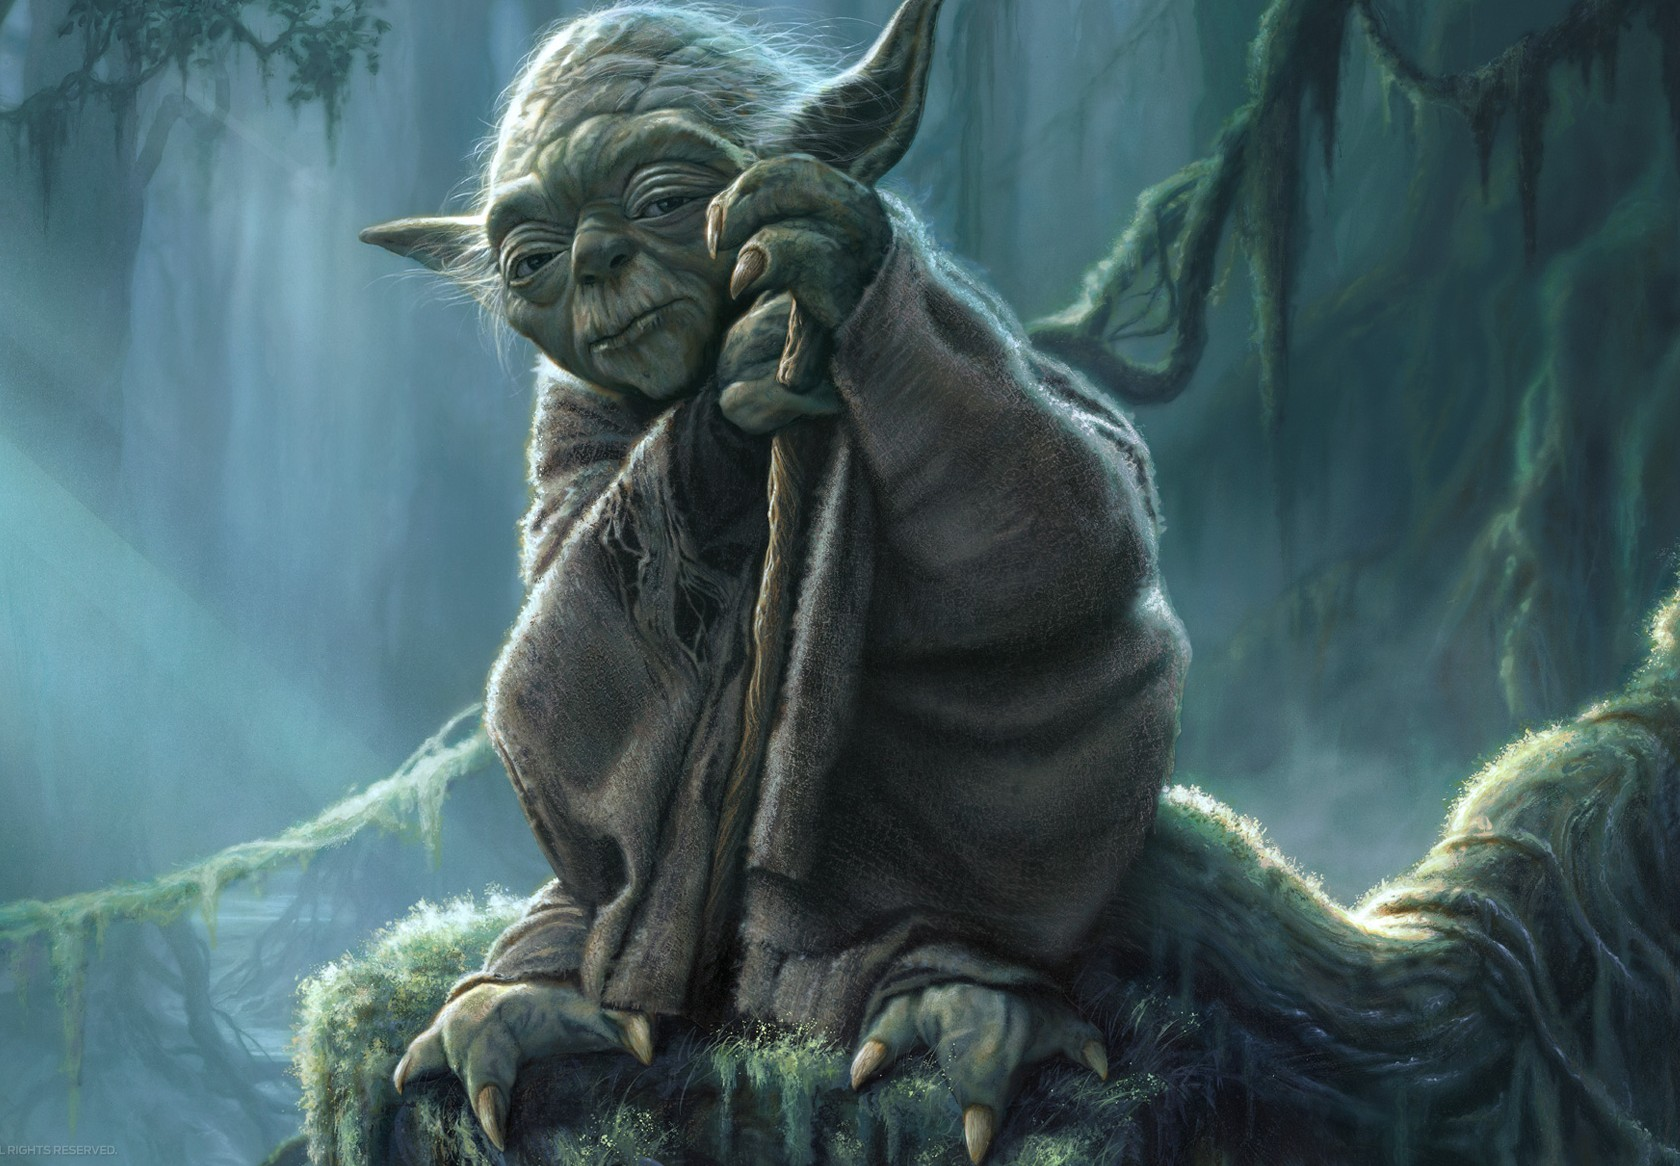 "Cavaliere Jedi di grande valore e maestro di Luke Skywalker, Yoda è un personaggio chiave dell'intera saga. Il nome Yoda deriva da 'yodha', che in sanscrito significa ""guerriero"", ma potrebbe derivare anche dall'Ebraico yodea, che significa ""colui che conosce"", a sottolineare la grande saggezza che permea tutto il personaggio. Ipse dixit Yoda Jedi Star Wars cult stories cultstories cinema cult story cultstory art culture music ipse dixit aneddoti citazioni frasi famose aforismi immagini foto personaggi cultura musica storie facts fatti celebrità vip cult spettacoli live performance concerto photo photography celebrity giornalismo scrittura libri genio pop icon attore cantante solista pittrice scultore attrice star diva sex symbol mito yoda frasi yoda immagini yoda meme yoda lego yoda disegno yoda wallpaper yoda muore yoda costume yoda peluche yoda vs dooku yoda star wars yoda quotes yoda attore yoda action figure yoda aforismi yoda amazon yoda anakin yoda amigurumi yoda altezza yoda art yoda anakin obi wan yoda and the force a yoda quote a yoda movie a yoda christmas a yoda footballer a yoda saying a-yado gion a yoda number a-yoda kyoto yoda a sith yoda a anakin yoda à colorier yoda à moi yoda à imprimer citations yoda à luke yoda parle à l'envers masque yoda à imprimer citation yoda à anakin villa yoda à saint-jean-de-luz monologue de yoda à luke yoda la souhaitait à luke quel age à yoda yoda black series yoda babbo natale yoda backpack yoda battlefront yoda bestemmia yoda birthday yoda bologna yoda bong yoda beatles yoda bastone alain b yoda ragwear yoda b complejo b yodado ragwear yoda b w hoodie maitre yoda b ragwear yoda b sweater pullover blau melange ragwear yoda b hw12 b ooba maitre yoda b-boy yoda ragwear yoda b v yoda citazioni yoda christmas yoda cartoon yoda chronicles yoda contro palpatine yoda cosplay yoda combattimento yoda cat yoda cane c yoda conditions ragwear yoda c ragwear yoda c hw12 c.g.i yoda ragwear yoda c w hoodie ragwear yoda-c-fw12 hooded-sweatshirt ragwear yoda c hoodie damen h c yoda ragwear yoda c blue yoda c yoda da colorare yoda di star wars yoda death yoda disney yoda dark side yoda drawing yoda disney infinity yoda dj yoda dog dj yoda dj yoda tour dj yoda essential mix dj yoda mix dj yoda t shirt dj yoda soundcloud dj yoda happy dj yoda chop suey dj yoda shirt dj yoda happy lyrics yoda esselunga yoda e luke yoda età yoda episode 1 yoda et yoda episode 5 yoda e anakin yoda esilio yoda emoticon yoda edicola yoda e.t yoda e akbar storia yoda e la forza yoda e darth vader yoda e palpatine yoda e skywalker yoda e et yoda e lo skate yoda è morto yoda ébresztőóra yoda életkora yoda hány éves lego yoda építés yoda mester életkora yoda guerre des étoiles quem é yoda fond d'écran hd star wars yoda élete oque é yoda ela é toda toda quem é yondaime yoda è sardo yoda è vivo yoda chi è yoda non c è provare chi è yoda yoda fare o non fare yoda foto yoda funny yoda fight yoda face yoda femmina yoda film yoda figure yoda force yoda f-pipe g5000 mustafa yoda f.a yoda gif yoda gremlin yoda giocattolo yoda gadget yoda griffin yoda gadgets yoda gioco yoda giudichi me yoda generator yoda gangnam style yoda g yoda g mod trigger yoda g trigger job g star yoda shirt lg optimus g yoda g schramm meister yodas ende yoda hat yoda hd yoda hip hop yoda hotel horizon yoda happy birthday yoda h&m yoda hoodie yoda hip hop dance yoda happy new year yoda hulk john h yoda henry h yoda h jon benjamin yoda yoda h-da yoda il risveglio della forza yoda ita yoda infinity yoda in star wars 7 yoda icon yoda impara a distaccarti yoda infinity 3.0 yoda il lato oscuro yoda in edicola yoda i.p.r yoda i am yoda i p r meaning yoda i.p.r. what does it mean yoda i inn yoda i meant you no harm yoda i love new york yoda i have failed yoda i anakin yoda i star wars yoda jedi yoda jawapedia yoda jokes yoda jedi quotes yoda's jedi starfighter yoda jedi master quotes yoda joker yoda java yoda jedi master sideshow yoda just do yoda keep calm yoda kotobukiya yoda kernel yoda keychain yoda knitting pattern yoda knit hat yoda keep calm and carry on yoda krieg der sterne yoda karim yoda kermit kyodai butterfly kyodai yodanna k guzman yoda k&q steven k yoda k ase ola yoda yoda lightsaber yoda lato oscuro yoda la paura yoda luke yoda la minaccia fantasma yoda l'impero colpisce ancora yoda lego star wars yoda la forza yoda libro yoda l'odio l'officina di yoda yoda l'empire contre attaque yoda l'attachement carrie l. yodanis l'histoire de yoda l'age de yoda citation yoda l'amour yoda vs l'empereur yoda maestro yoda maschera yoda master yoda mask yoda minaccia fantasma yoda memes yoda may the force be with you yoda puppet m yoda ro robert yodashkin m.d m yoda59 yoda natale yoda nido del cuculo yoda natalizio yoda no provare yoda nevermind yoda nella nuova trilogia yoda no there is another yoda no try yoda news yoda numa numa yoda n'essaie pas fais le yoda n'essaie pas yoda n rosa idol citation yoda n'essaie pas maitre yoda n'essaie pas yoda origami yoda oscuro yoda obi wan yoda obi wan and anakin ghost yoda olio yoda og yoda odio yoda orecchie yoda o yoda yoda origins yoda o palpatine yoda o darth sidious yoda o anakin yoda o mace windu yoda o sidious yoda.o sal yodada o sal marina yodada o yodatada yoda o.g yoda o medo leva lego yoda óra yoda óra yoda provare yoda png yoda paura yoda pop yoda pensiero yoda personaggio yoda pyssla yoda portachiavi r.i.p yoda yoda quotes wiki yoda quando muore yoda quando 900 anni yoda quotes wikiquote yoda quotes try yoda quote try yoda quotes fear yoda quote there is no try yoda quotes there is no try yoda q q es yoda q vs yoda k&q yoda q es sal yodada impractical jokers q yoda q raza es yoda q significa yoda q es povidona yodada q es alcohol yodado yoda razza yoda rollinz yoda race yoda robot yoda rollinz esselunga yoda rambaldi yoda risveglio della forza yoda resize calculator yoda ro yoda rap i p r yoda yoda.r yoda.r o yoda star wars 7 yoda spada laser yoda stories yoda sith yoda sardo yoda soccer yoda star wars battlefront yoda stilizzato yoda star wars frasi yoda's protector yoda's race yoda's quotes yoda's species instalaciones yoda s l yodai s.r.o yoda's master yoda s.r.o yoday s.a.c yoda's lightsaber yoda thun yoda t shirt yoda the force awakens yoda tumblr yoda theme yoda tattoo yoda tour yoda the phantom menace yoda training yoda try not yoda t shirt sunglasses yoda t-shirt disney t shirt yoda dj t shirt yoda star wars t-shirt yoda says relax yoda t shirts yoda t shirt step brothers yoda t-shirt do or do not t shirt yoda unkut yoda usb yoda uncinetto yoda usa la forza yoda ubriaco yoda usb desk protector yoda ugly dog yoda use the force yoda unlearn yoda urban yoda usb protector yoda u tube dj yoda u no likey like that yoda u zagrebu dress up yoda yoda ü ei booba ùaitre yoda yoda vs palpatine yoda vs yoda vs palpatine ita yoda vs darth vader yoda vector yoda video yoda vs anakin yoda vestito yoda vs hulk soul calibur v yoda star wars v yoda star wars v yoda there is another yoda v sidious yoda v darth sidious yoda v count dooku yoda v darth vader yoda v yoda v.s sidious yoda vs vader yoda wikiquote yoda wikipedia yoda wookieepedia yoda wikiquote eng yoda wikia yoda weird al lyrics yoda war does not make one great yoda weird al yoda wiki star wars yoda w big w yoda clock at-rt w/ yoda clone trooper and assassin droid yoda w et yoda w radiu yoda w łóżku yoda xmas yoda x wing yoda xmas jumper yoda x reader yoda and luke yoda xmas sweater yoda xmas hat yoda xmas card yoda xmas tree yoda xmas quotes yoda x wing scene yoda x wing swamp lord yoda x yoda x-sim yoda x factor yoda x darth sidious yoda x faktor yoda x wing youtube yoda x darth vader yoda young yoda youtube yoda yoga yoda yogurt yoda youtube star wars yoda youtube origami yoda you will be yoda yolo yoda youtube weird al yoda youtube quotes yoda yoda zaino yoda zen yoda zitate yoda zitate deutsch zitate yoda yoda zitate star wars yoda zitate lustig yoda z gwiezdnych wojen yoda zitate englisch yoda zhang yoda z gwiezdnych wojen krzyżówka yoda z origami yoda z papieru memy z yoda np.yoda z gwiezdnych wojen mistrz yoda z origami sony xperia z yoda yoda z lego np. yoda z gwiezdnych wojen krzyżówka 09yoda origami yoda yoda soccer 0.77 numa numa yoda 09 yoda soccer 0.78 yoda soccer 0.76 yoda soccer 0.77 download yoda yd-022 yoda costume 0-6 months yoda soccer 0.73 0-3 month yoda costume yoda 1977 yoda 1999 yoda 1980 yoda 1/6 sideshow yoda 1/6 lenovo yoga 13 yoda 1138 yoda-1 yoda 1980 action figure yoda 12 inch 1 yottabyte yodachron 1 episode 1 yoda star wars 1 yoda episode 1 yoda chronicles yoda 1 1 gentle giant episode 1 yoda quotes yoda 2015 yoda2000 yoda2000 unibs yoda 2000 net yoda2000 net didattica yoda 2.4 yoda 29 yoda 2012 yoga 2 pro yoda 2013 2 yoda's yoda 2 starcraft 2 yoda battlefront 2 yoda starcraft 2 yoda vs first replicator 2 yoda star wars 2 yoda vs dooku lenovo yoga 2 guild wars 2 yoda makerbot replicator 2 yoda yoda 3 training yoda 3 training program yoda 3d model yoda 3d printer yoda 3d yoda 3 training workout yoda 3 training principles yoda 3 allenamento yoda 3 training system yoda 3d stl 3 yoda's yoda 3 training routine star wars 3 yoda vs sidious star wars 3 yoda vs darth sidious yoda 420 yoda 4 5 6 yoda 4 5 6 1 2 3 yoda 40 t shirt yoda 40 years old shirt yoda 41 year old virgin yoda 4 eared cat yoda 40 cm yoda .45 lightsaber yoda 4-eared cat from chicago 4 rodas soul calibur 4 yoda soul calibur 4 yoda ps3 soul calibur 4 yoda vs darth vader star wars 4 yoda soul calibur 4 yoda combos soul calibur 4 yoda critical finish soul calibur 4 yoda story mode soul calibur 4 yoda gameplay yoda 5 more minutes yoda 5 more minutes meme yoda 5 afraid of 7 yoda_51 yoda 5 besar yoda if 5 count yoda soul calibur 5 yoda chronicles episode 5 yoda star wars 5 episode 5 yoda soul calibur 5 yoda star wars 5 yoda iphone 5 yoda wallpaper episode 5 yoda quotes iphone 5 yoda iphone 5 yoda case 5 fold yoda yoda 678 yoda 678 joke yoda 6 inch black series yoda 6 black series yoda 678 joke meme yoda 6 afraid of 7 yoda 64 yoda 6 mix yoda 6 music yoda episode 6 6 yodalla place avoca beach 6 yodalla ave emu plains 1/6 yoda sideshow 1/6 yoda iphone 6 yoda yoda 6 7 8 joke season 6 yoda arc yoda 789 joke yoda 7 8 9 yoda 7194 yoda 7 ate 9 yoda 7194 lego yoda 7194 instructions yoda 76 yoda 790 yoda 75002 yoda 75017 7. yoda stories windows 7 yoda theme 7 cervelli yoda star wars 7 yoda ios 7 yoda yoda 7 8 9 joke teamviewer 7 yoda episode 7 yoda yoda 8 ball yoda 8 bit yoda 800 years yoda 800 years old quote yoda 80 pop megamix yoda 80s mix yoda 80s yoda's 80s pop megamix yoda 8 ball for sale dj yoda 80s mix lenovo yoda 8 yoda 8 yoga windows 8 8 limbs yoga magic yoda 8 ball download teamviewer 8 yoda 1981 yoda 8 ball yoda 900 anni yoda 9gag yoda 900 years old yoda 900 years yoda 900 years old you reach yoda 900 yoda 900 years quote yoda 900 years old quote yoda 900 years quotes yoda 9 talking plush numa numa #9 yoda yoda 9 inch talking plush yoda 9 gag yoda 9 juni 9 talking yoda star wars 9 yoda bar mitzvah star wars 9 yoda talking plush lagu yoda 9 juni 2012 mortal kombat 9 yoda yoda 1080p wallpaper yoda 1000 yoda 100x100 yoda karte 101 dj yoda 10th november yoda top 10 quotes lenovo yoga 10 yoda top 100 yoda chronicles 1080p yoda vs sidious 1080p 10 reasons yoda was actually dead all along povidona yodada 10 top 10 yoda quotes 10 things yoda would say in bed 10 reasons yoda was dead all along 10 frases de yoda 10 fold origami yoda 10 facts about yoda dj yoda 10 november"